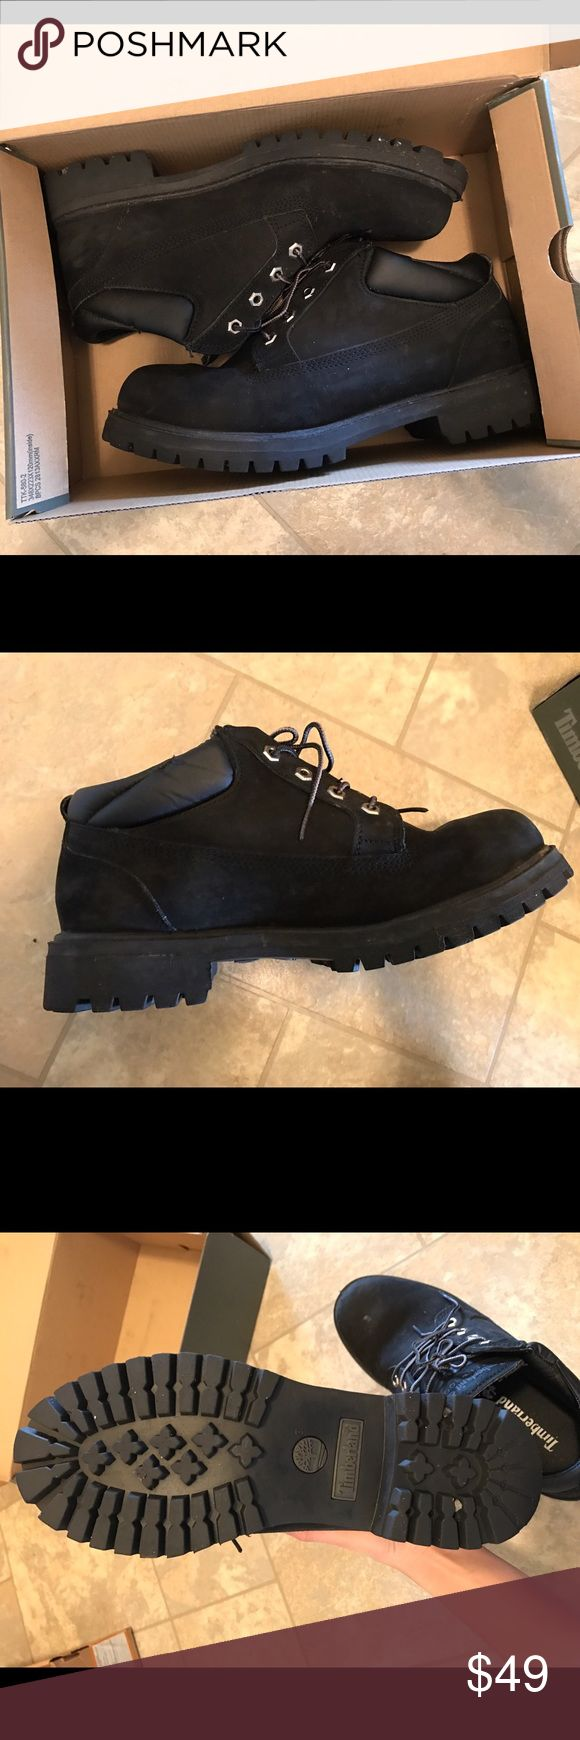 💥Moving SALE‼️Timberland men's boots Excellent condition. Only worn couple times! Size:9.5 ⚡️Save 15% on bundles! Timberland Shoes Boots